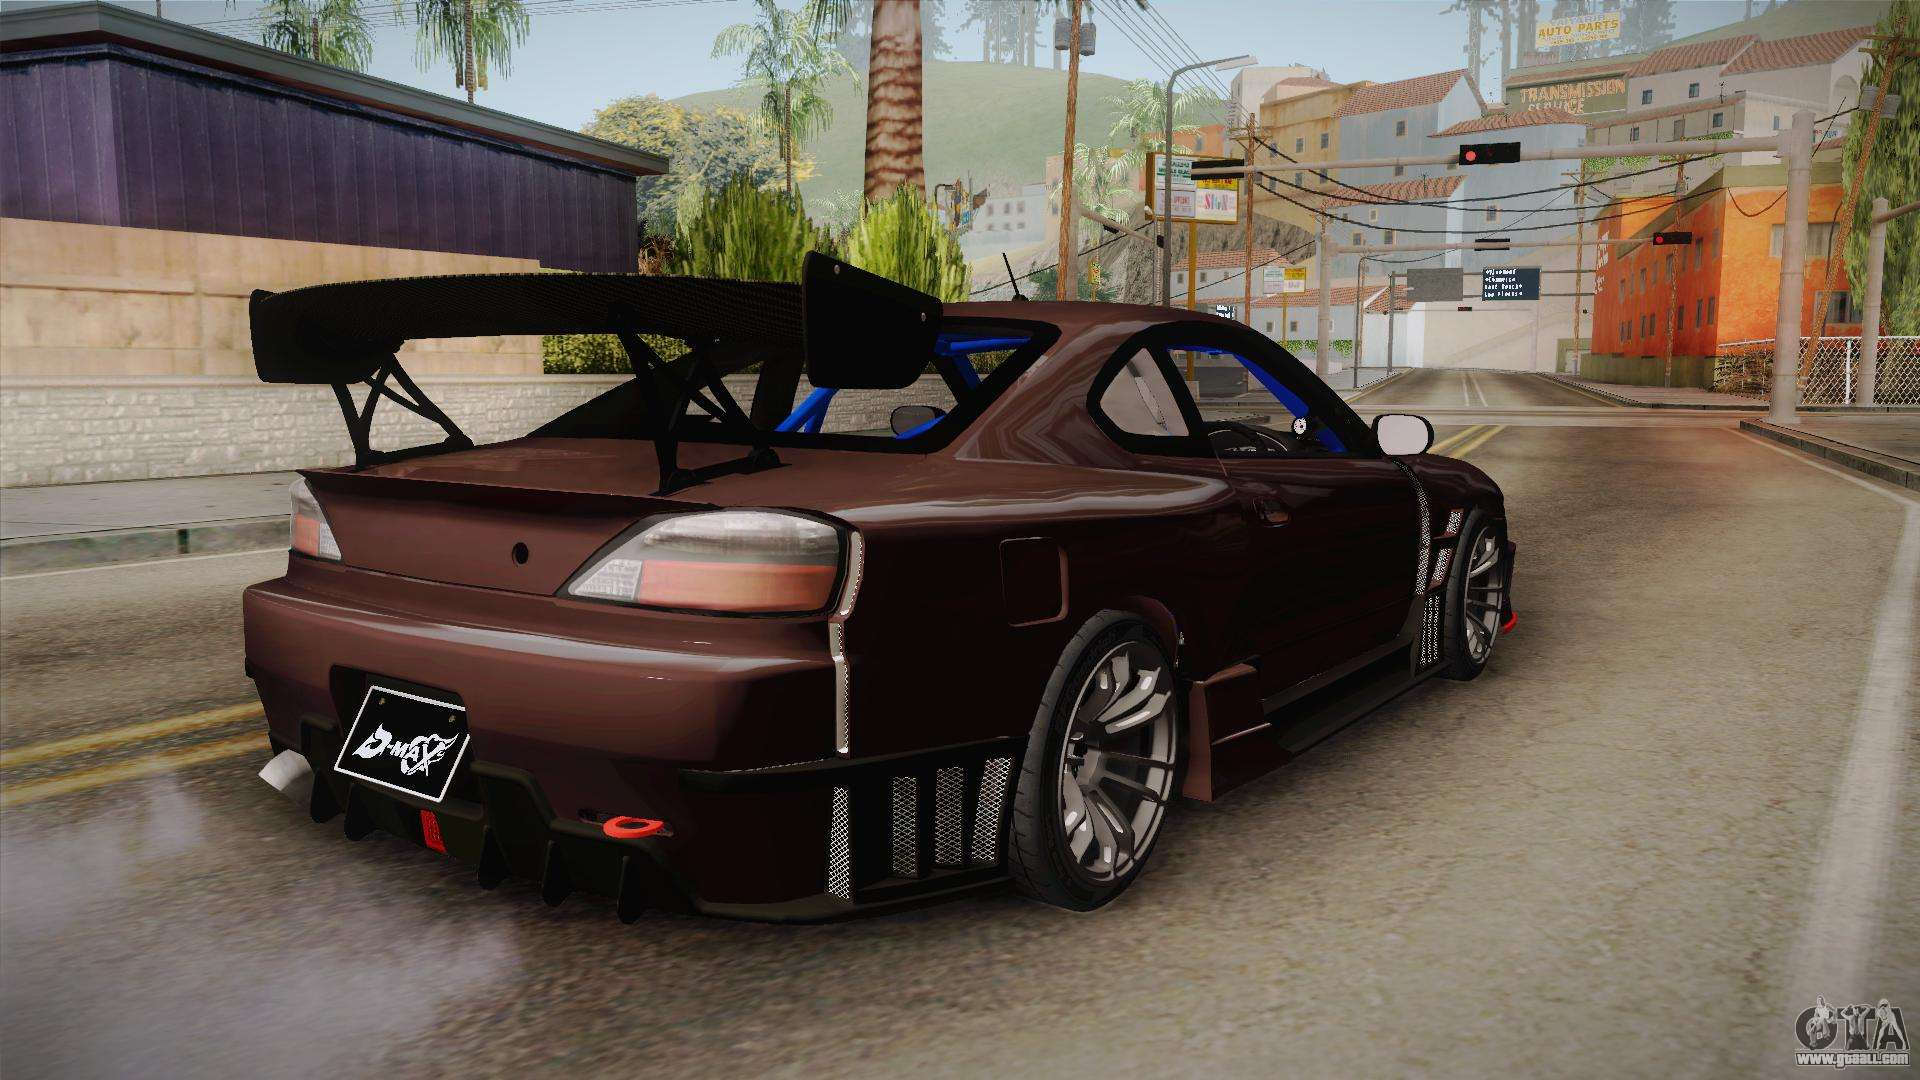 Gta San Andreas Nissan Silvia S15 Tunable Mod Was Downloaded Times Mona Lisa Apr Netty Monroe Drift Gastric Theft Auto News Comes Community And More Weve Got The Lowest Download